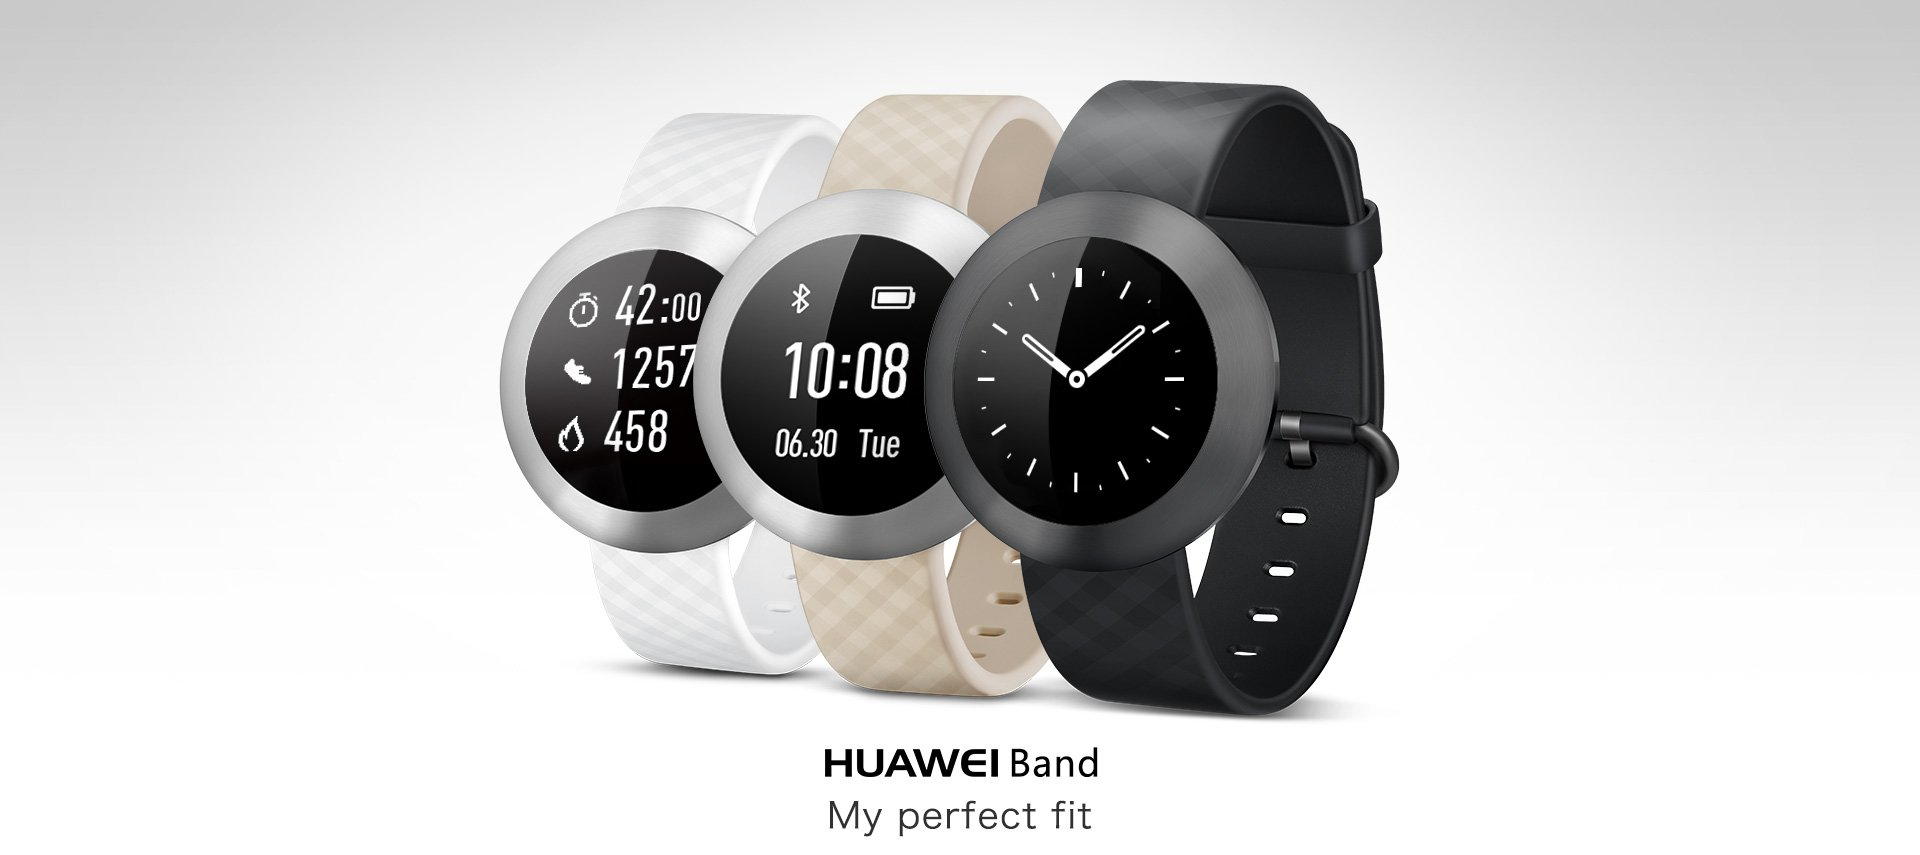 Huawei Band is A Perfect Companion & A Fitness Unit